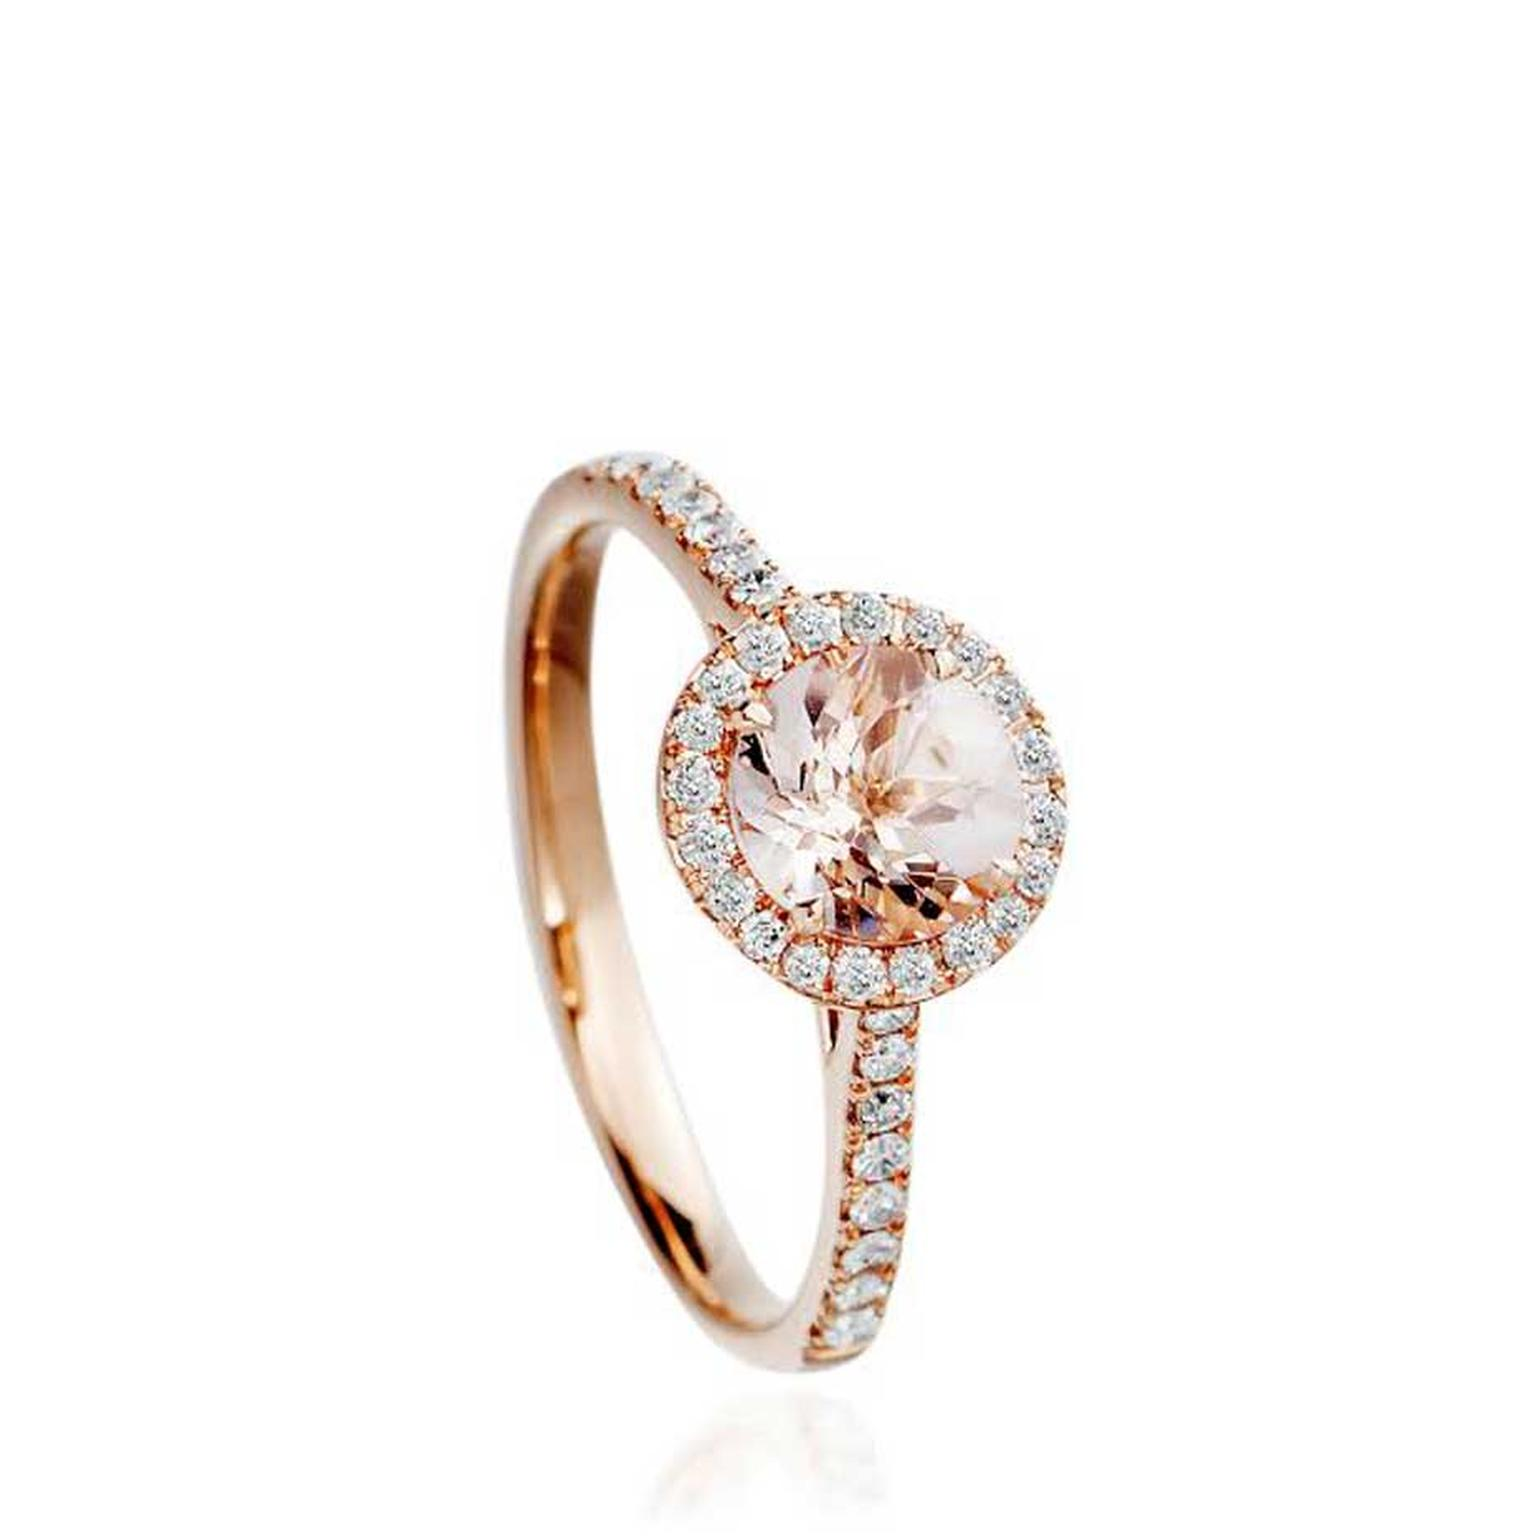 Astley Clarke Morganite Tearoom ring with a round-cut morganite surrounded by diamonds bezel set in rose gold.